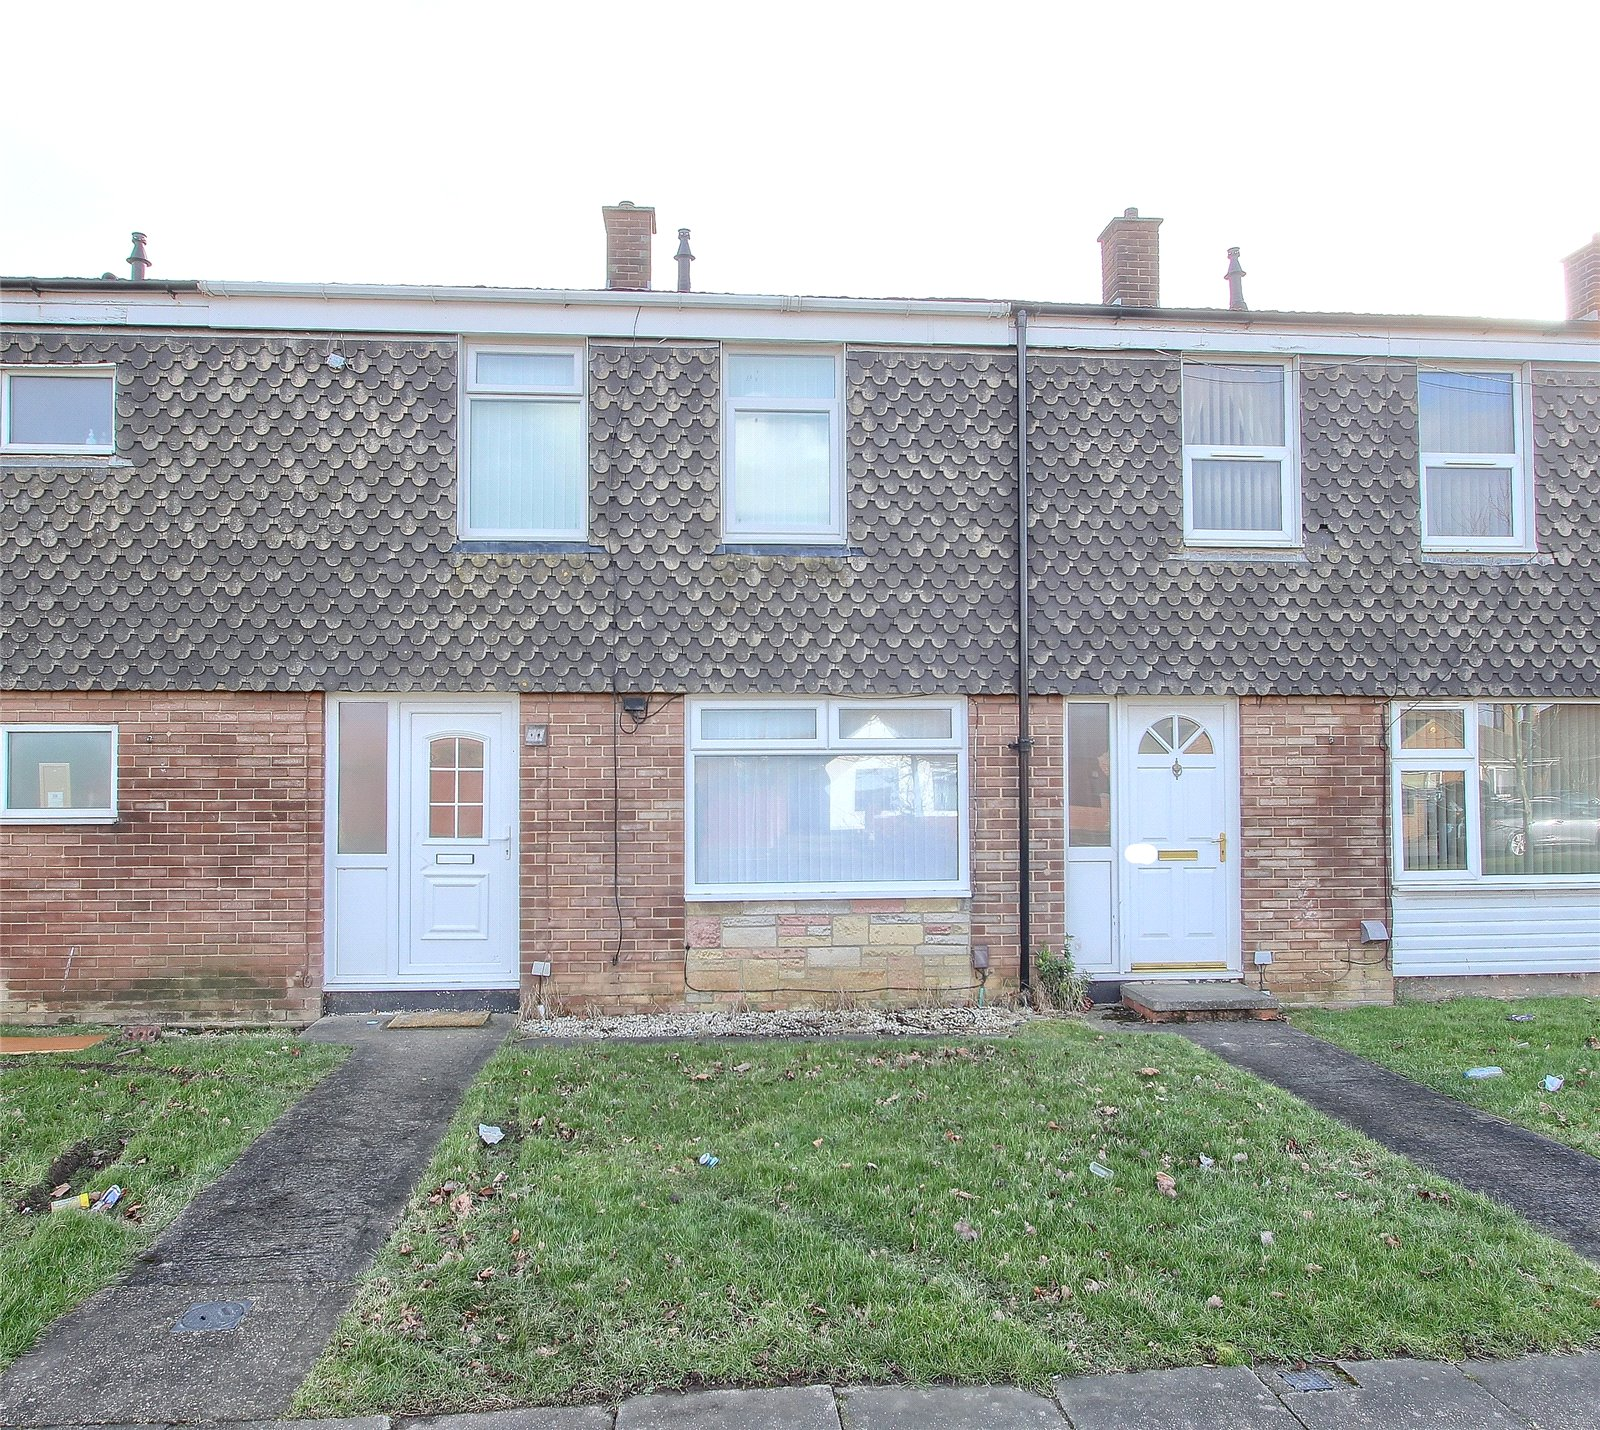 2 bed house for sale in Roseberry Road, Redcar - Property Image 1